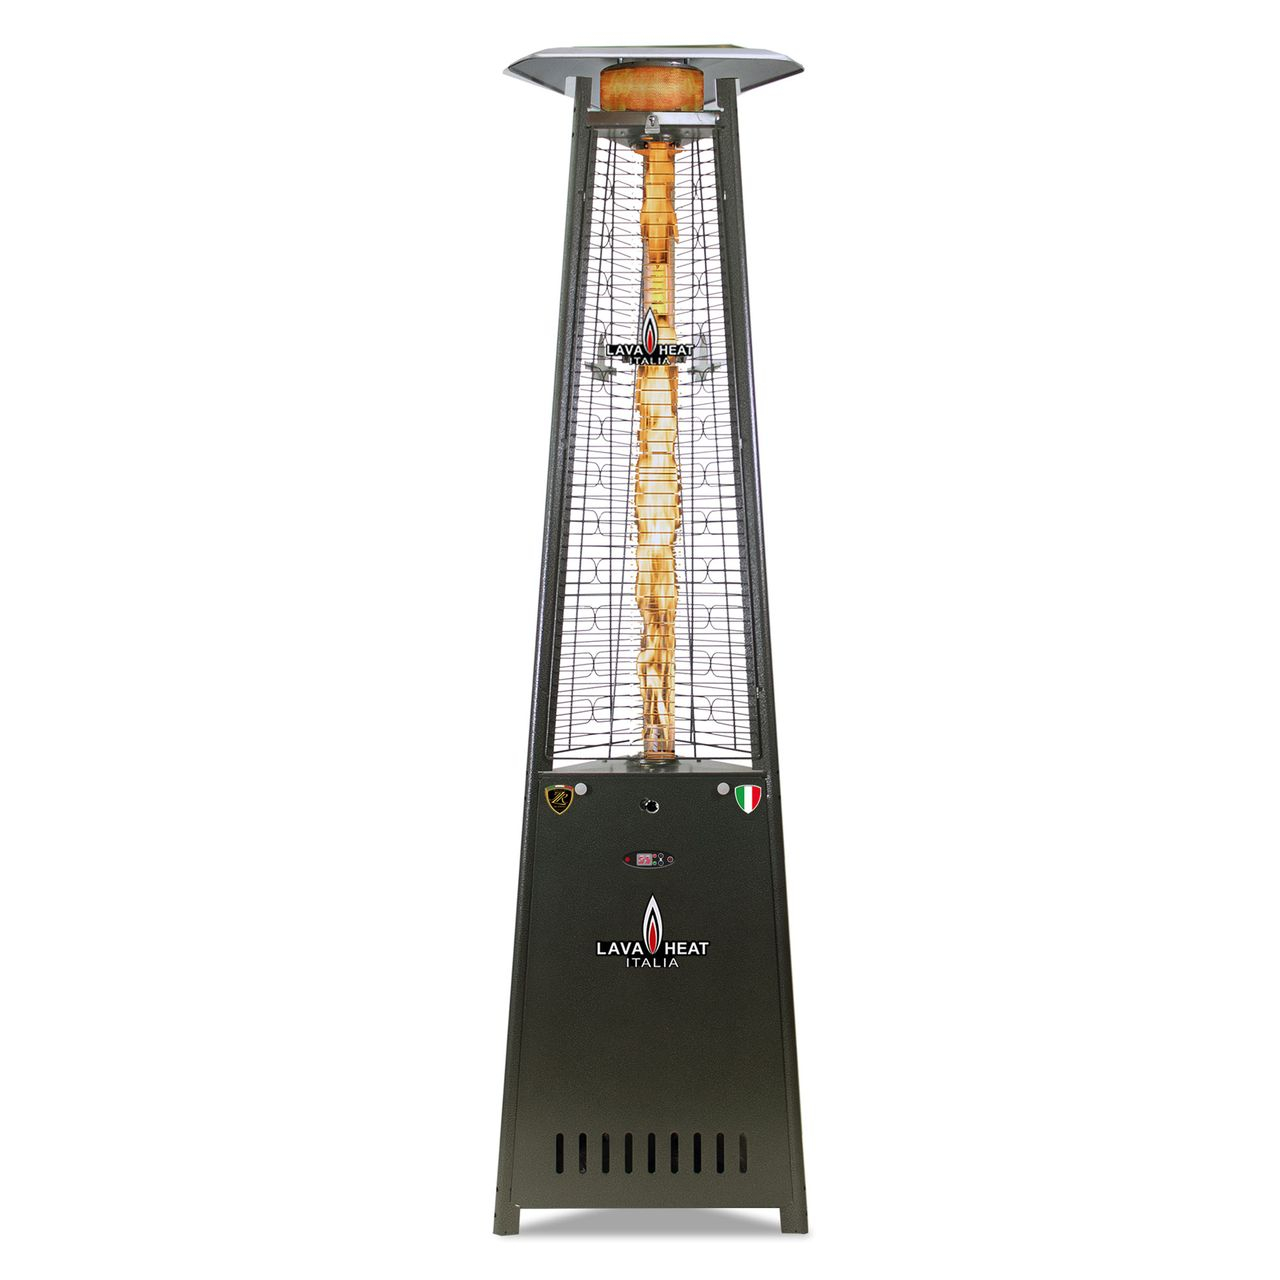 Lava Heat LP 2G PRO Triangle Flame Tower Heater - Hammered Grey